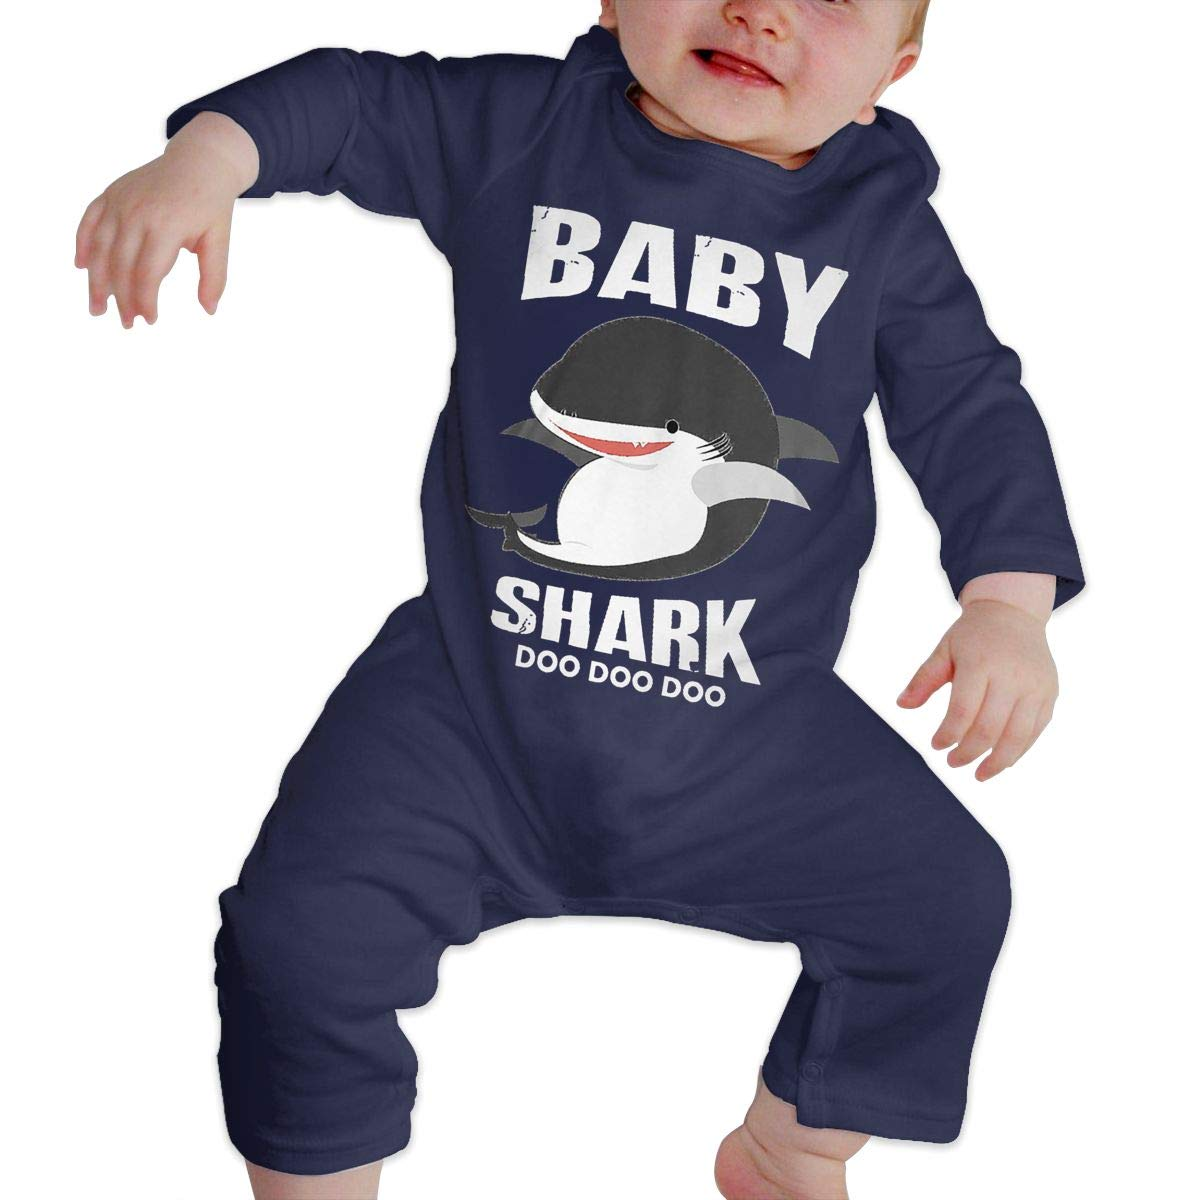 Baby Crew Neck Long-Sleeve Pure Color Romper Baby Shark Funny Matching Jumpsuits Sleepwear